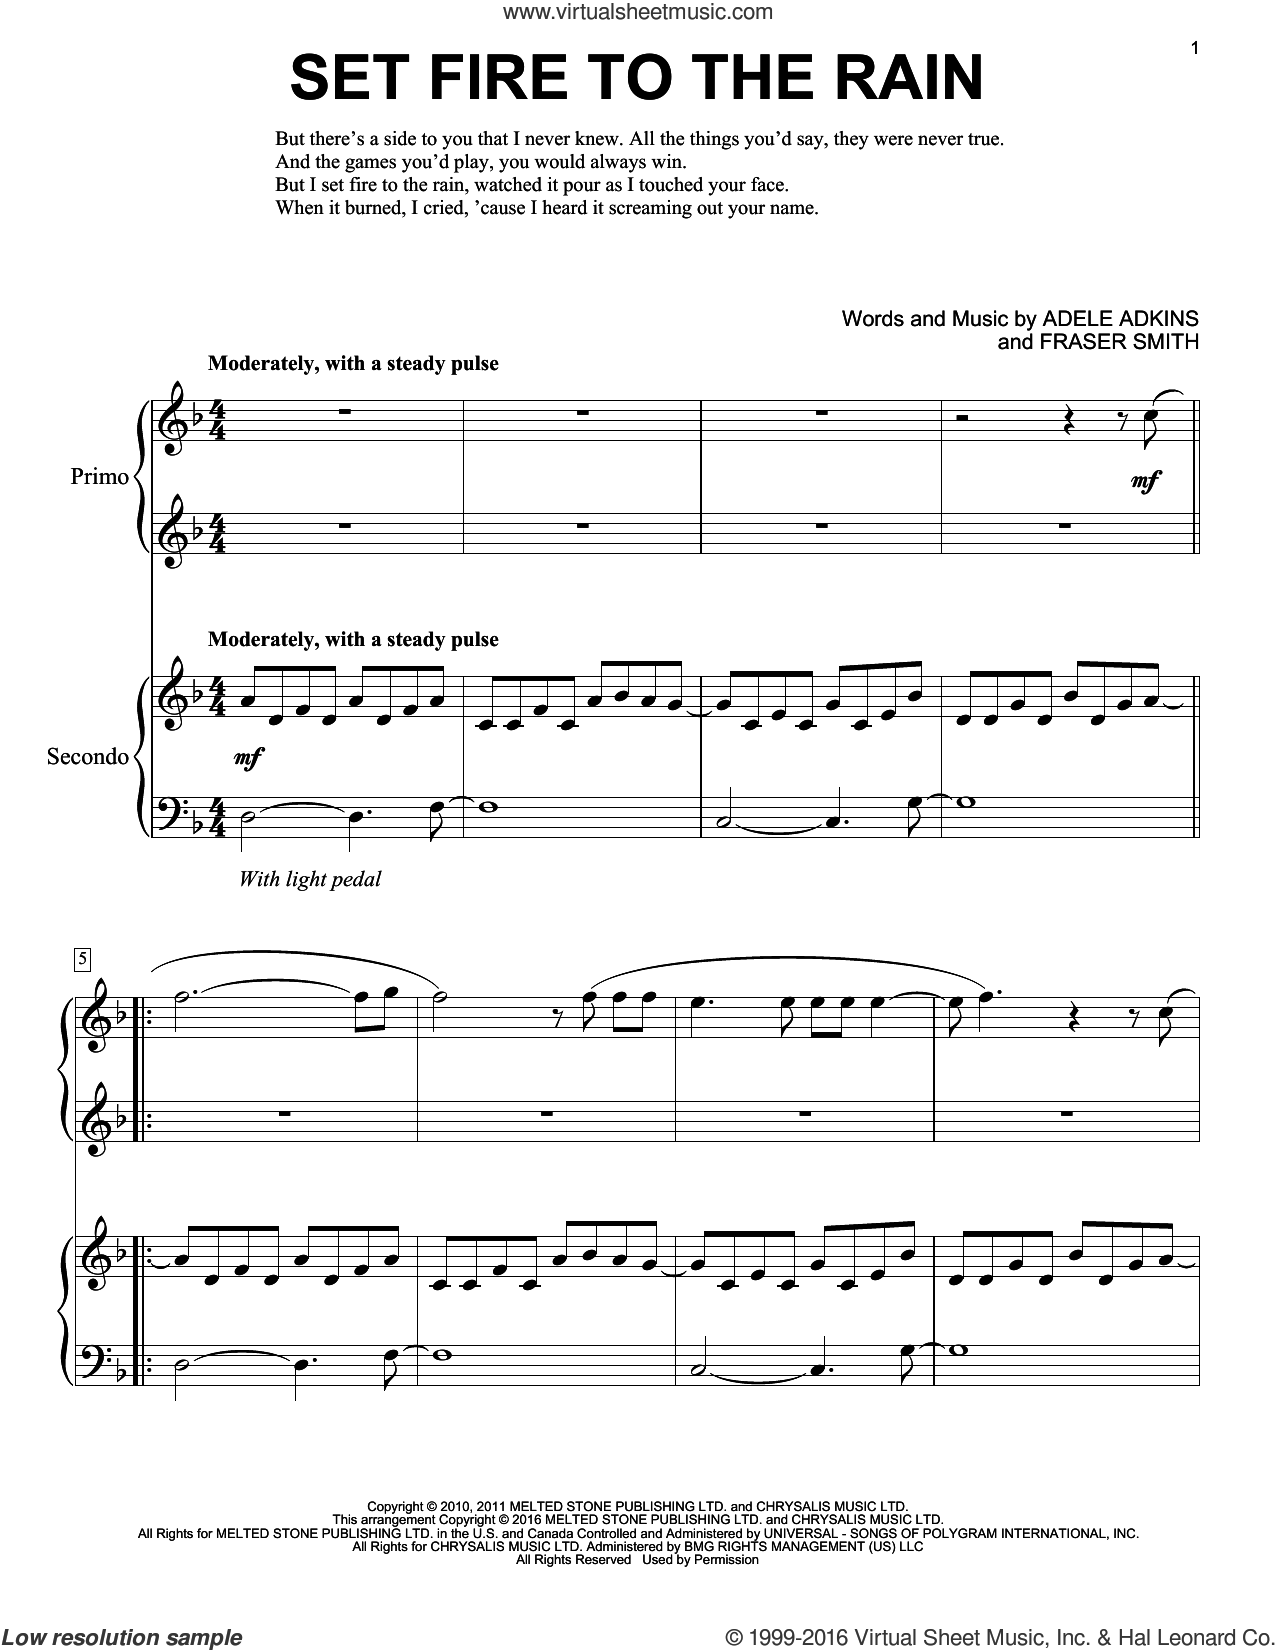 Set Fire To The Rain sheet music for piano four hands by Adele, Eric Baumgartner, Adele Adkins and Fraser T. Smith, intermediate skill level